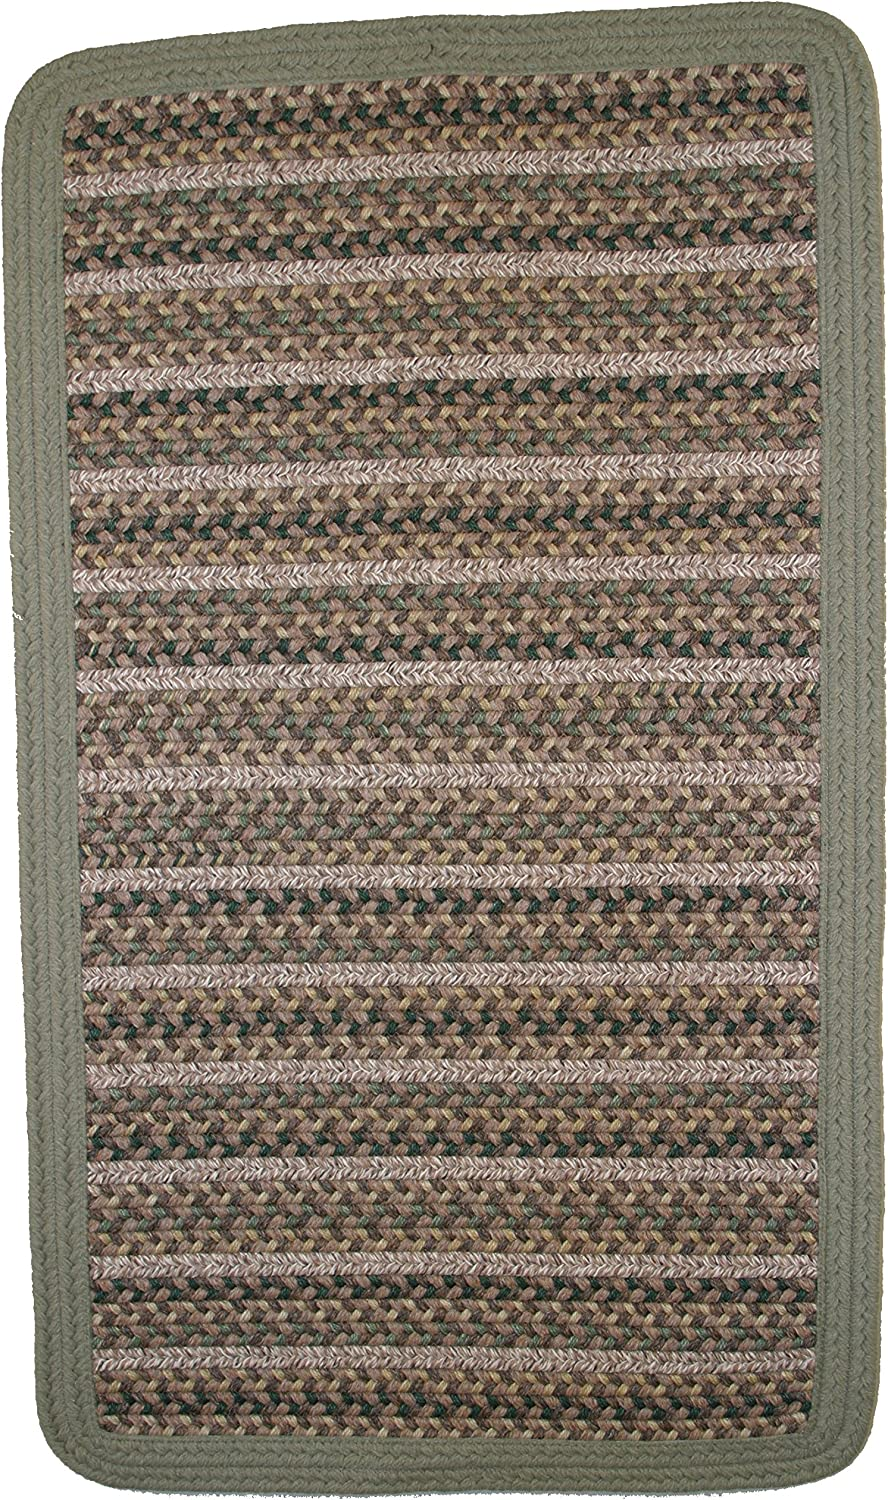 Thorndike Mills Beantown Braided Rug 3' x 5' Rectangle Boston Garden Green